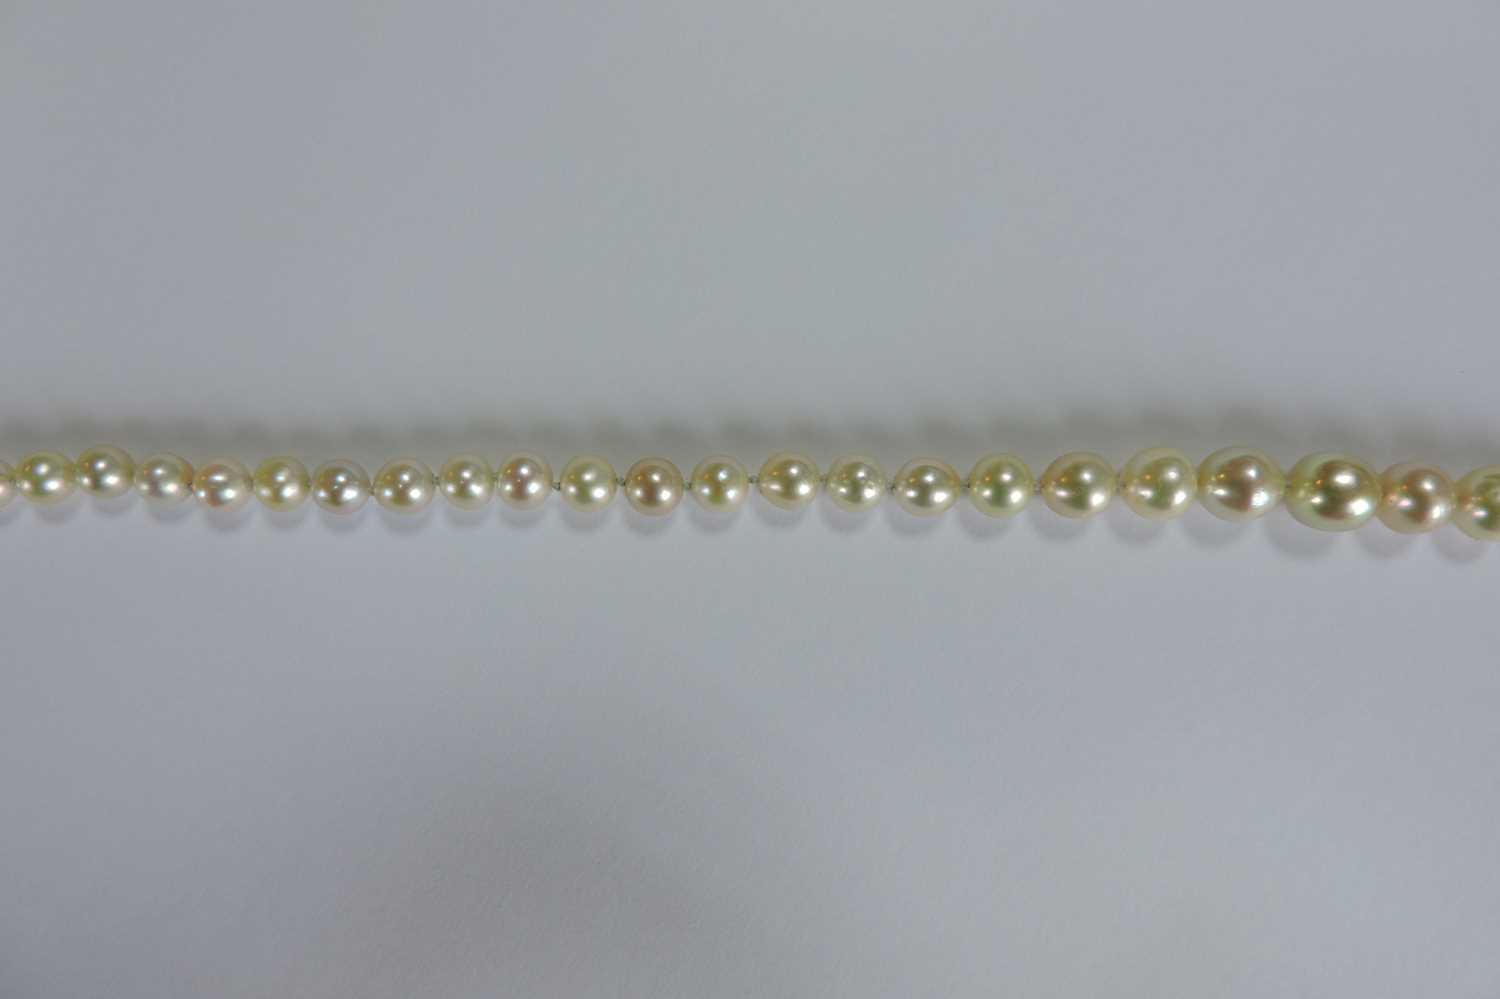 A single row graduated natural saltwater pearl necklace, - Image 11 of 12